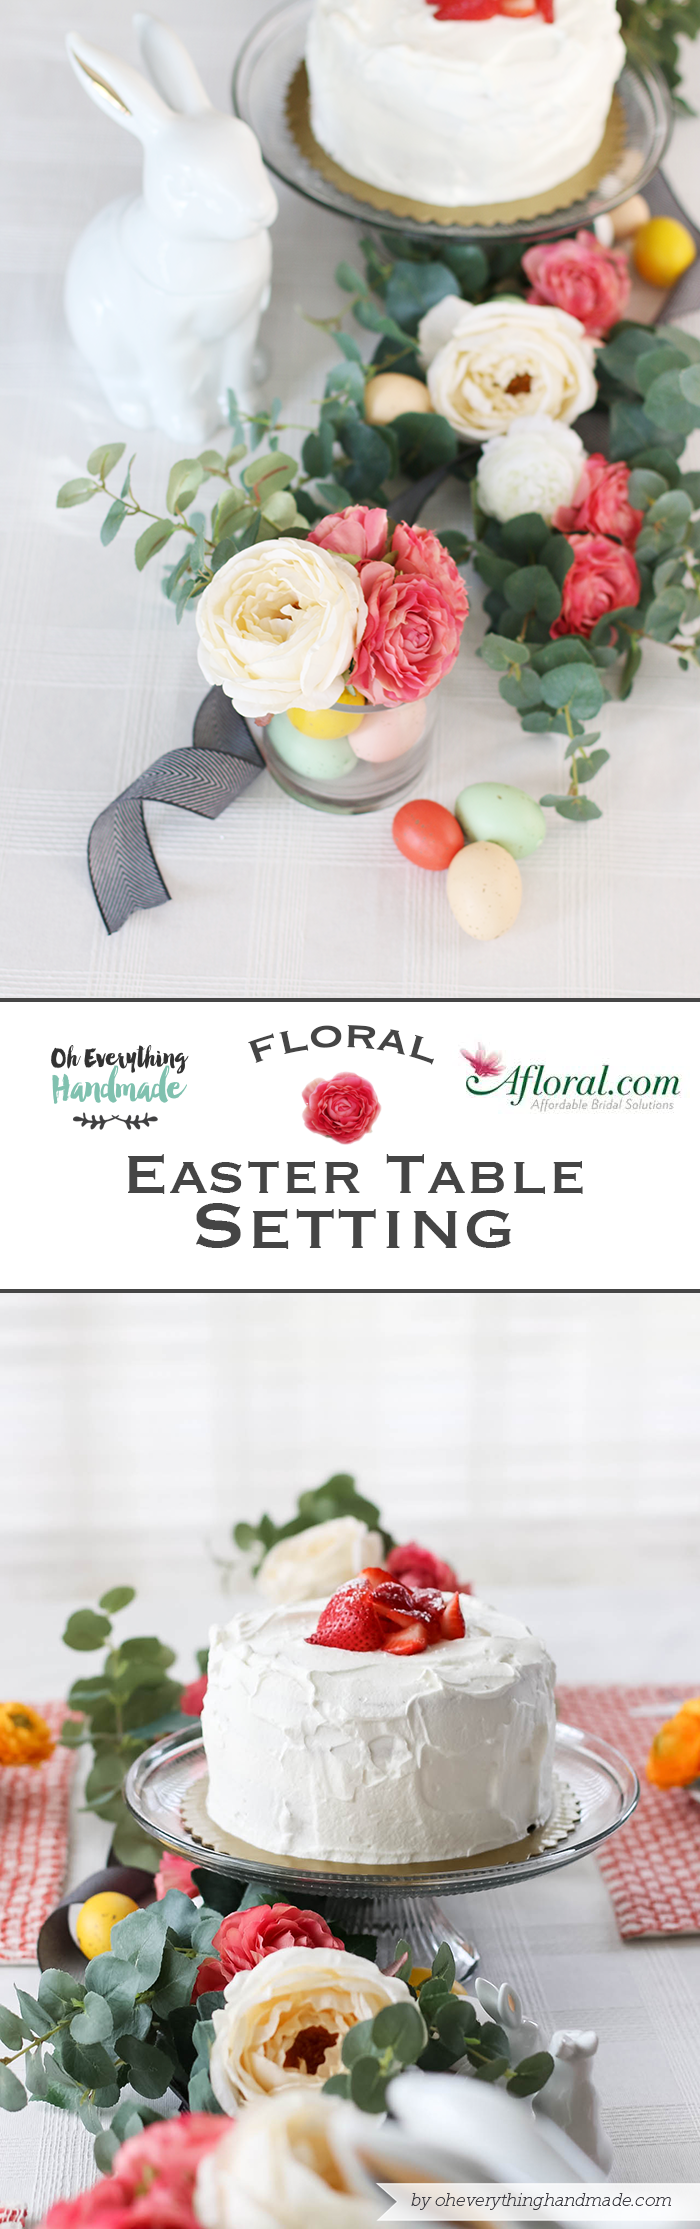 Floral Easter Table Setting - by oheverythinghandmade and afloral